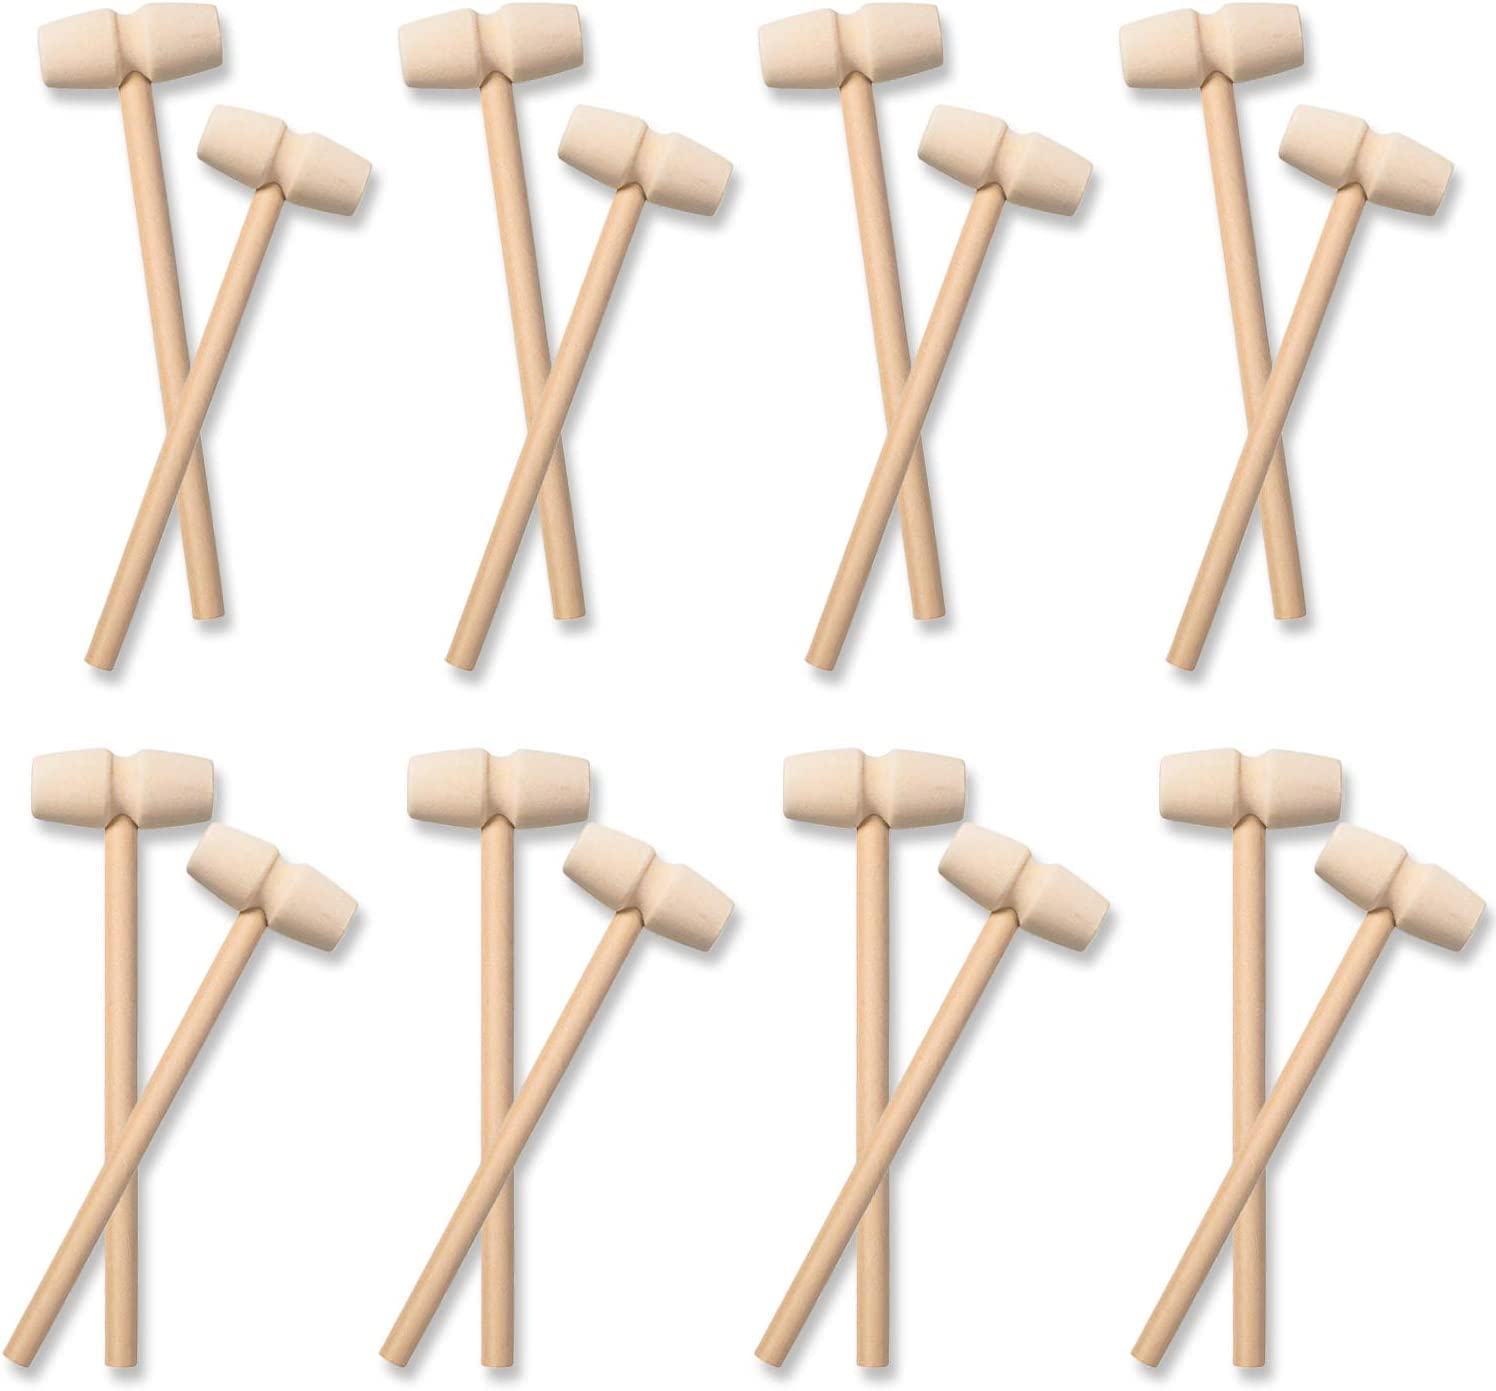 20 Pieces Mini Wooden Hammer Mallets Pounding Toy, Wooden Crab Lobster Shellfish Mallets Solid Natural Hardwood Crab Hammer for Cracking Chocolate, Seafood Tool